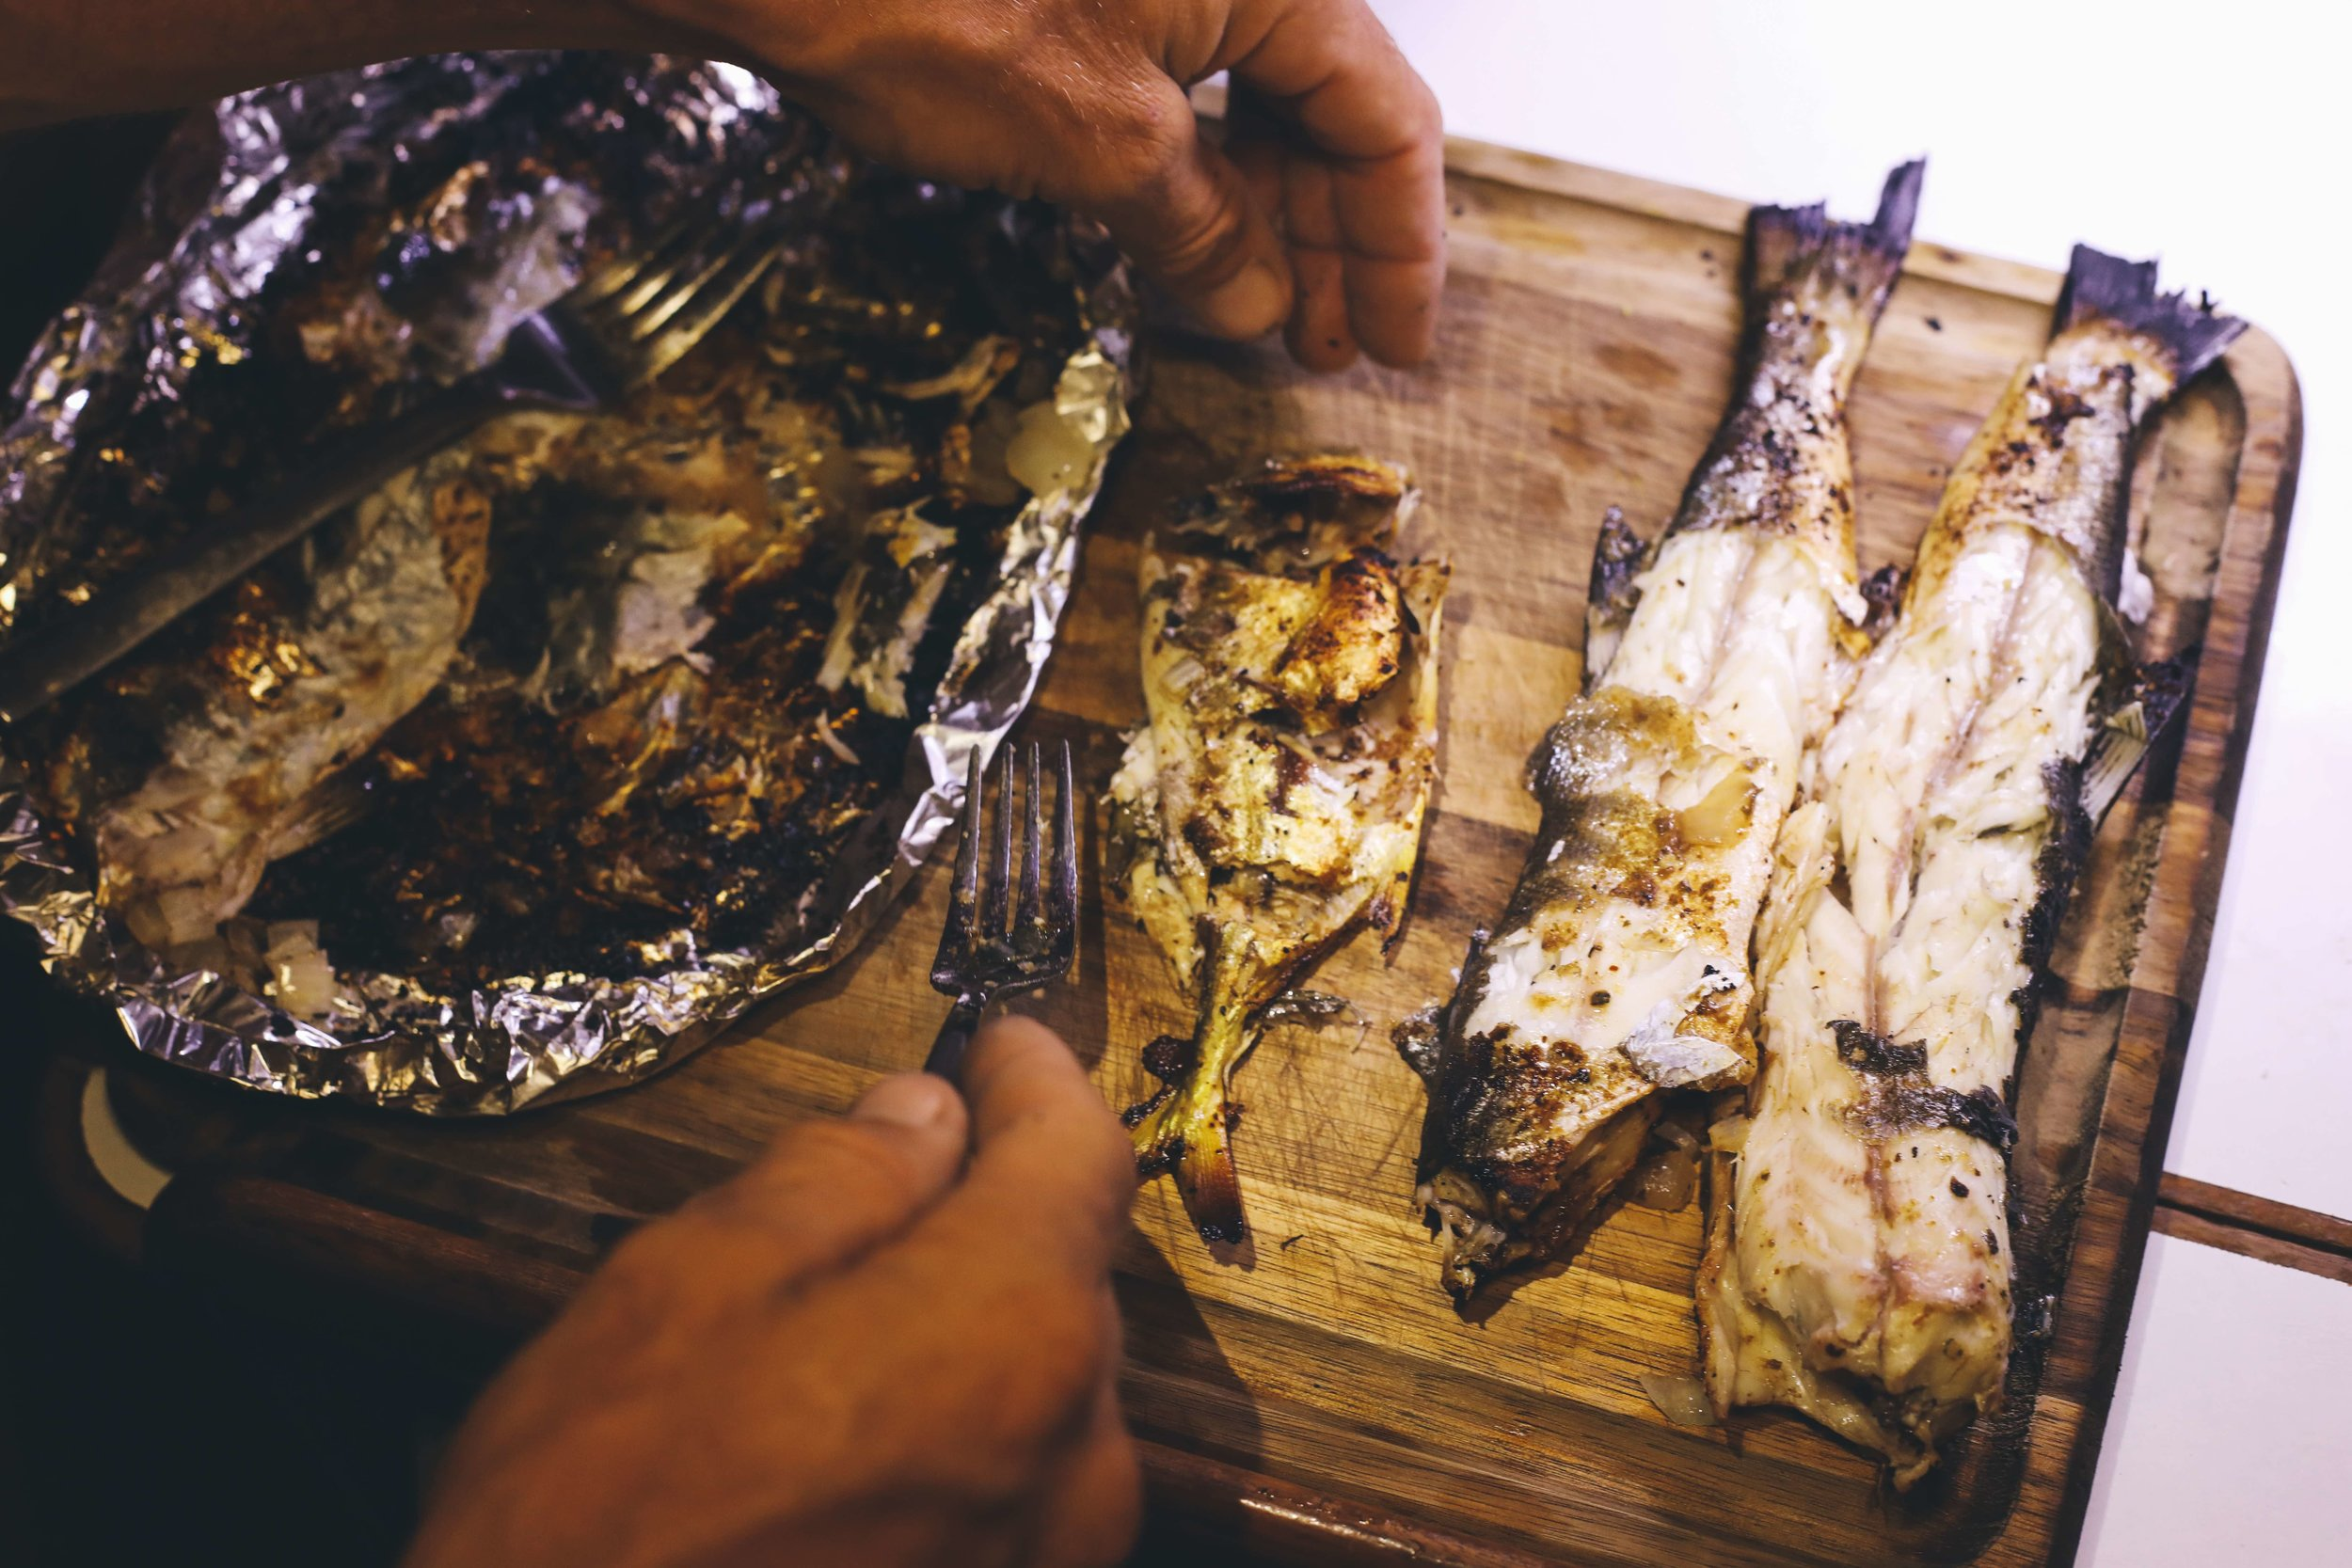 Edwin taught us how to catch these small barracuda and snapper that are abundant in the bay. As we hadn't seen a grocery store in months, this was our typical meal during our stay in Bahia Honda.